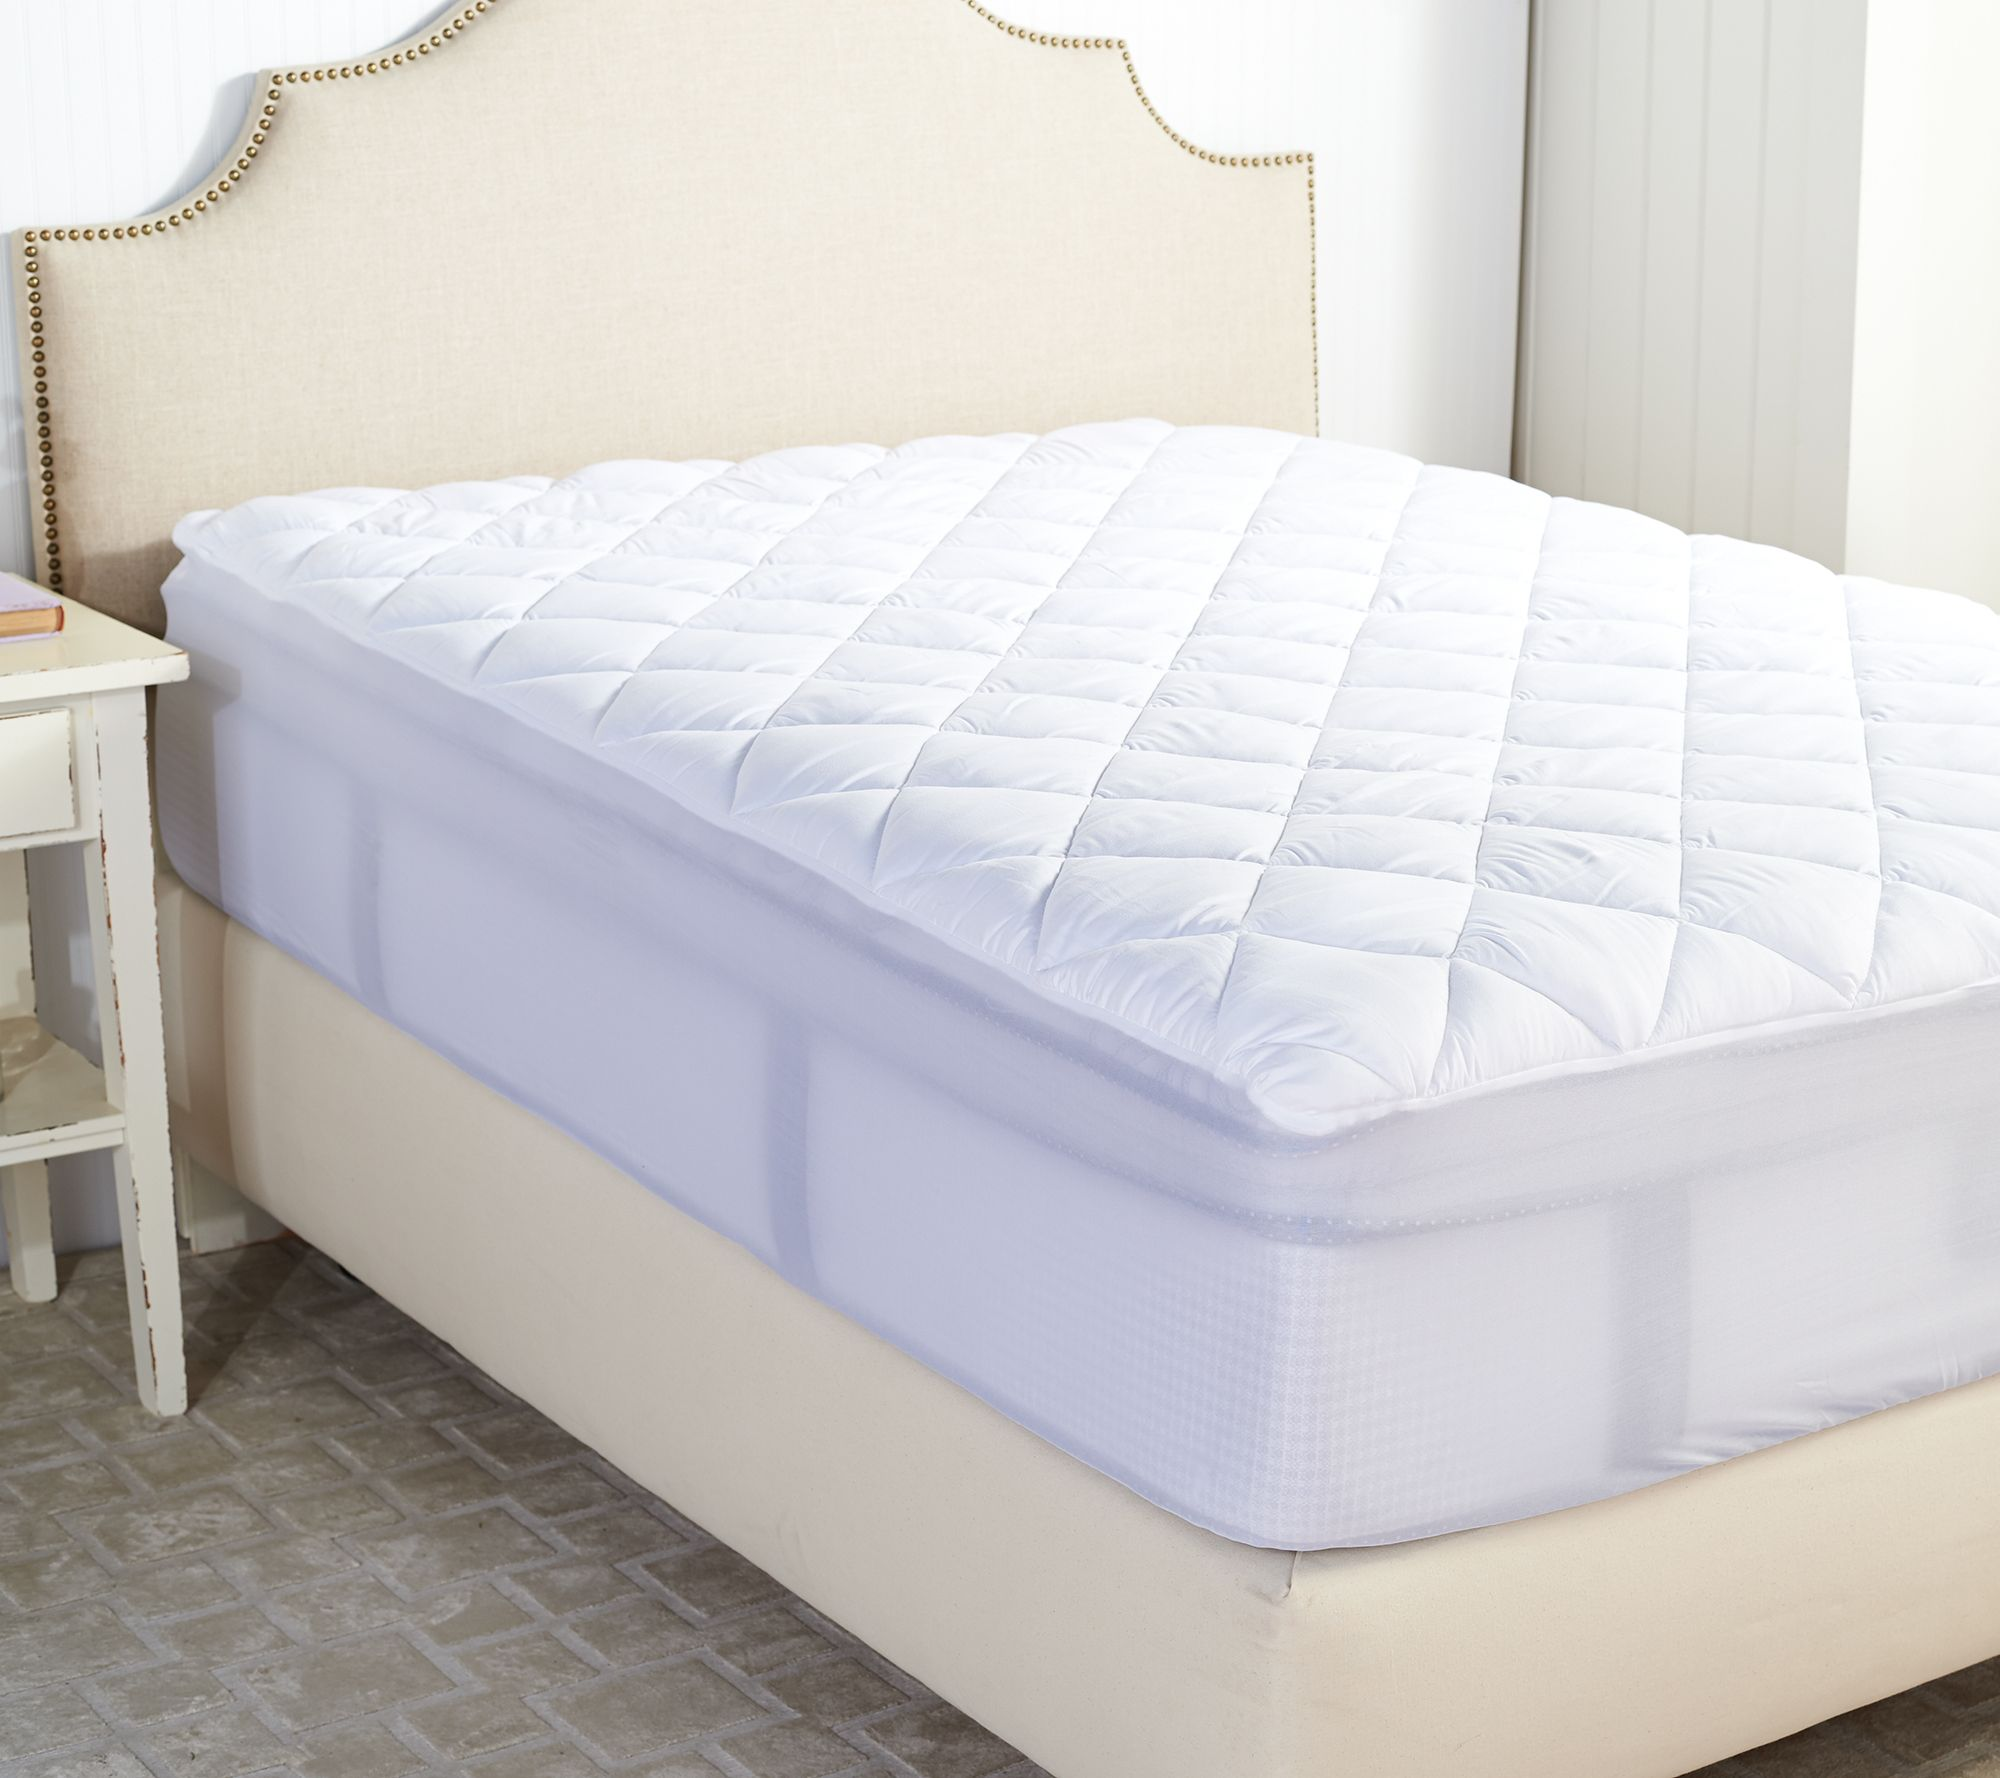 Serta Perfect Sleeper Queen Mattress Pad With Nanotex Technology Page 1 Qvc